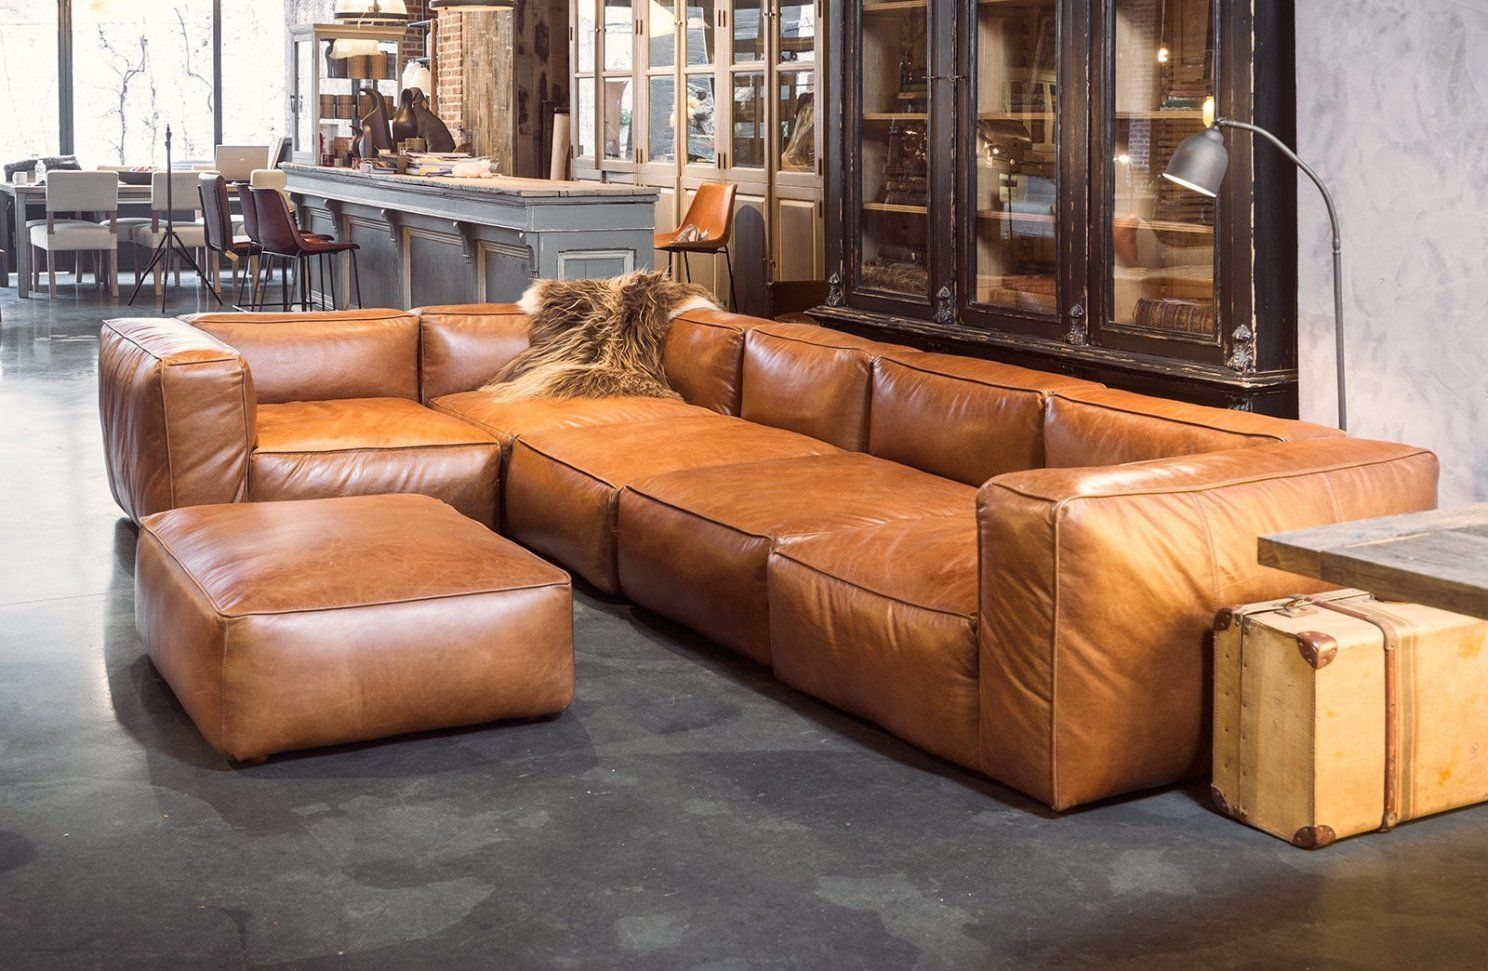 Cognac Leather Sofas Are Now On Trend For 2018 Homes Leather